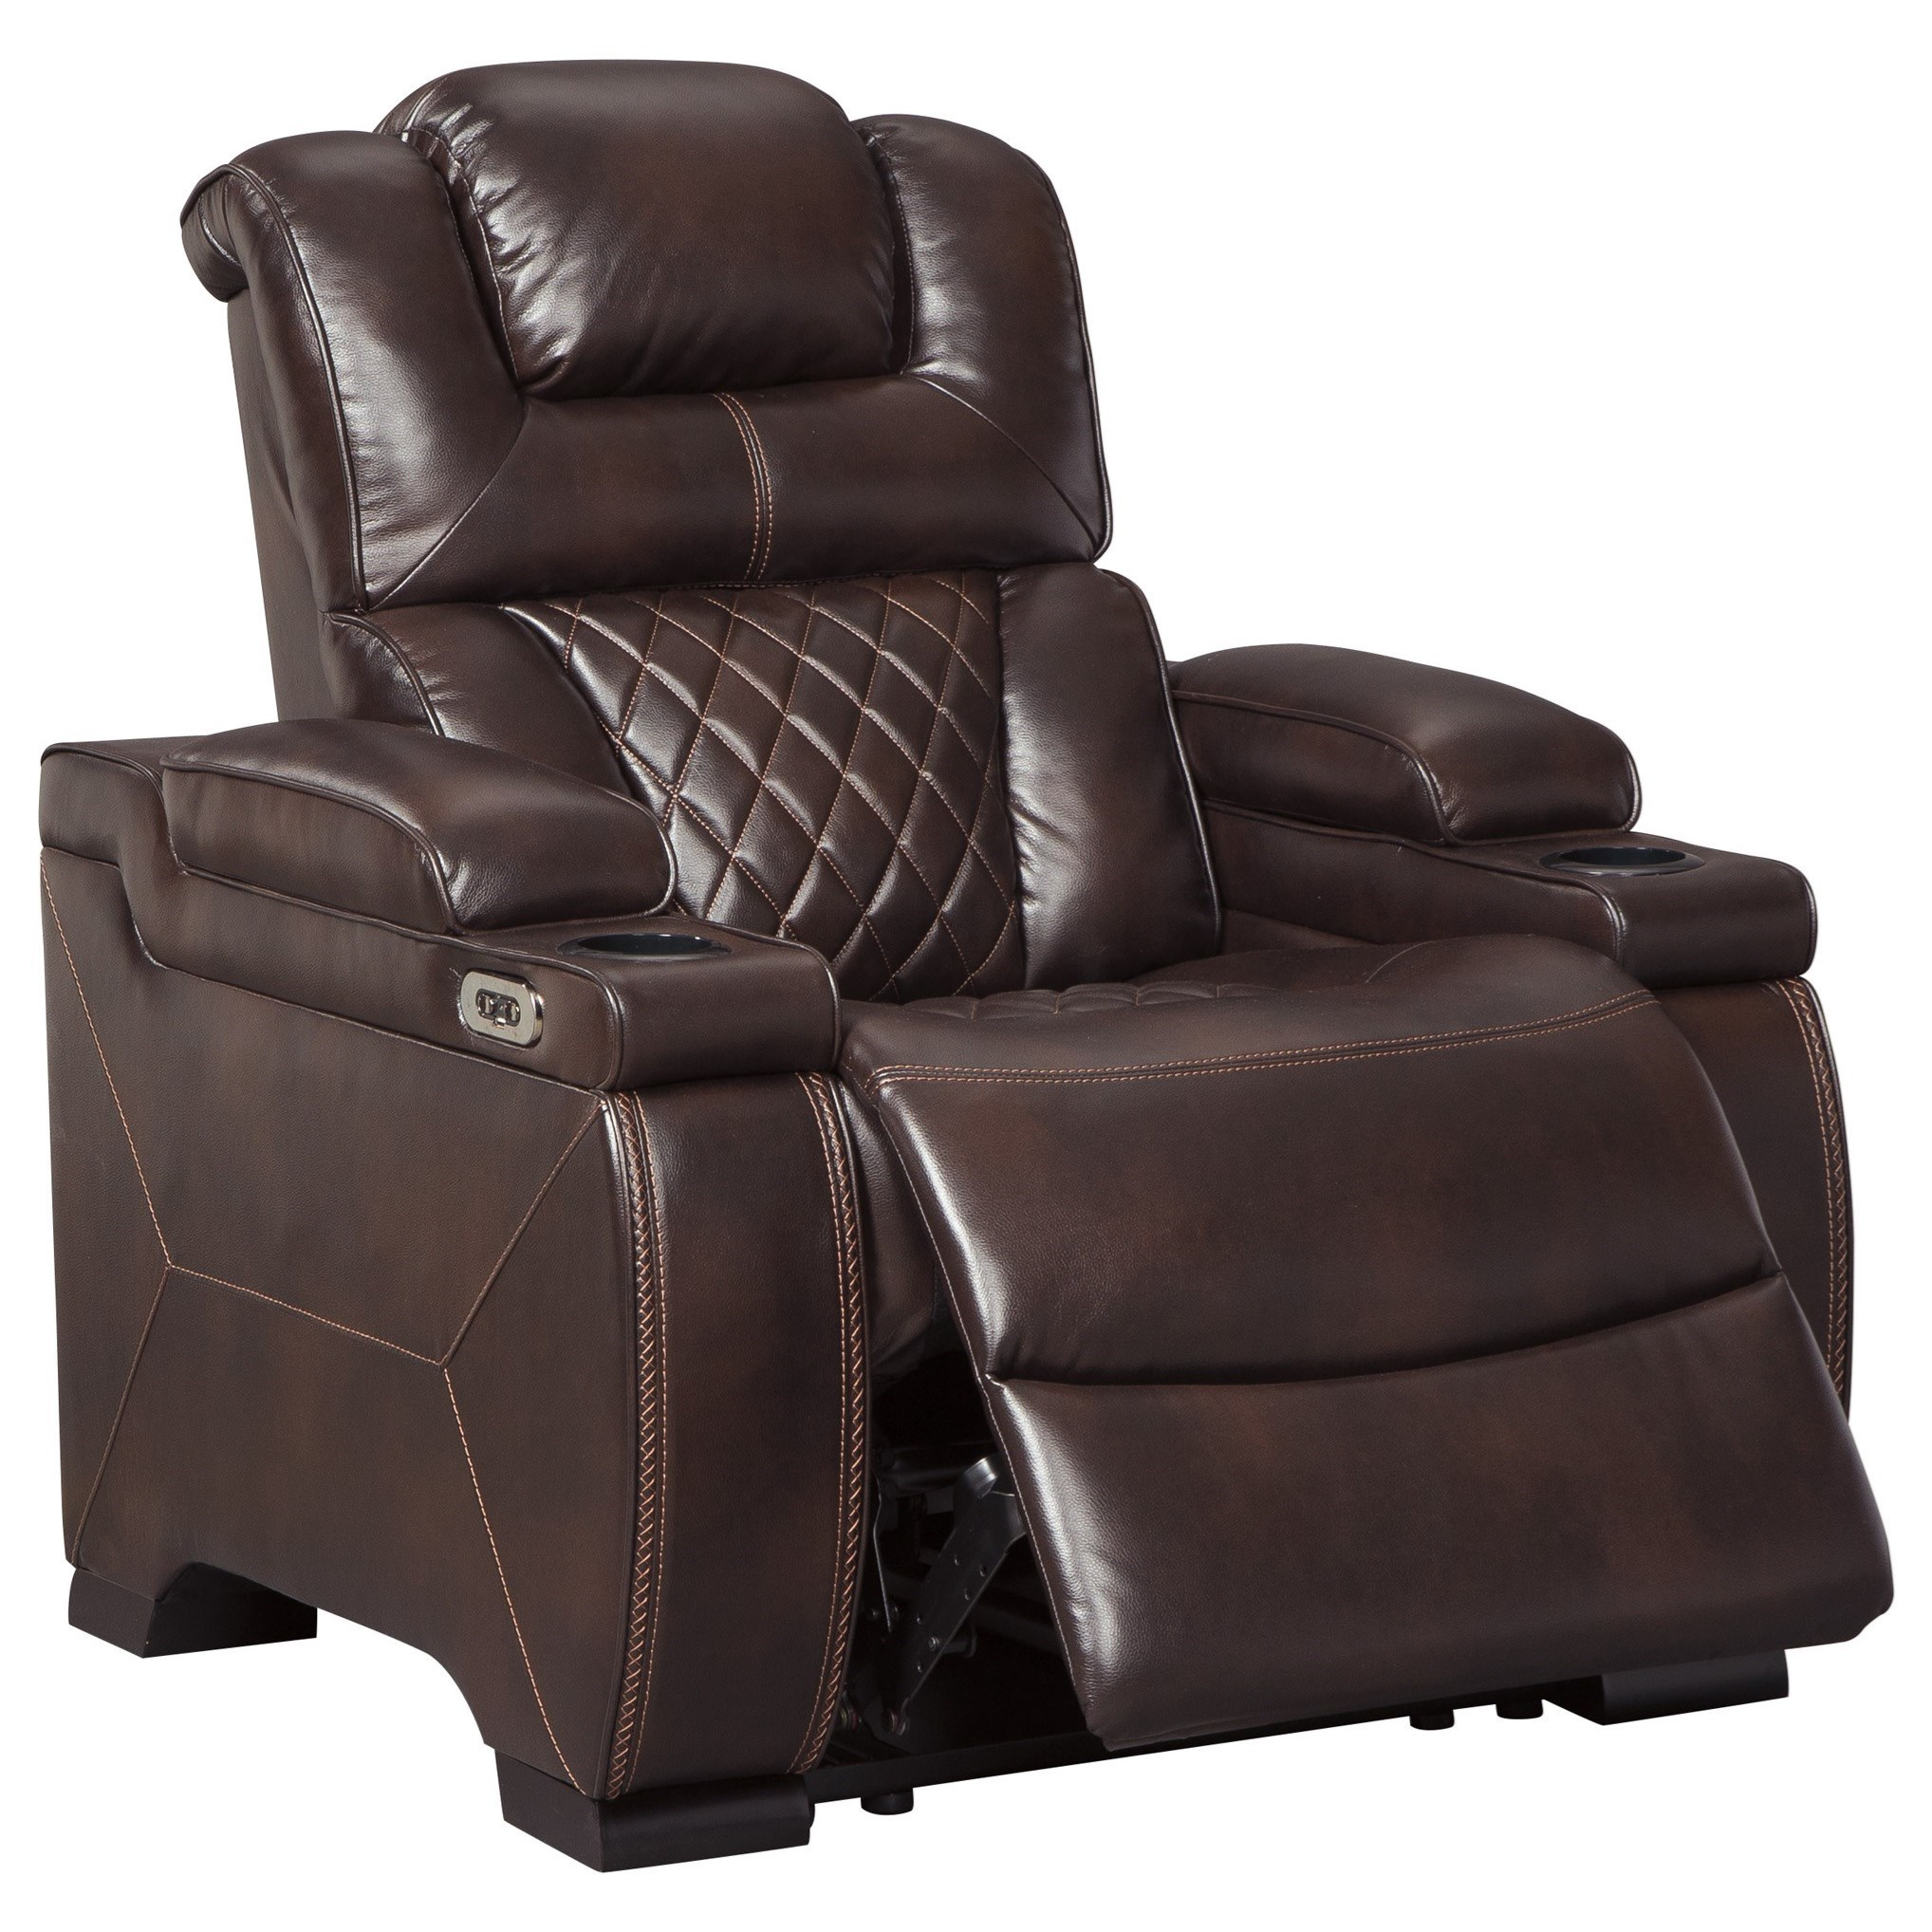 Signature Home Furniture: Signature Design By Ashley Warnerton Power Recliner With